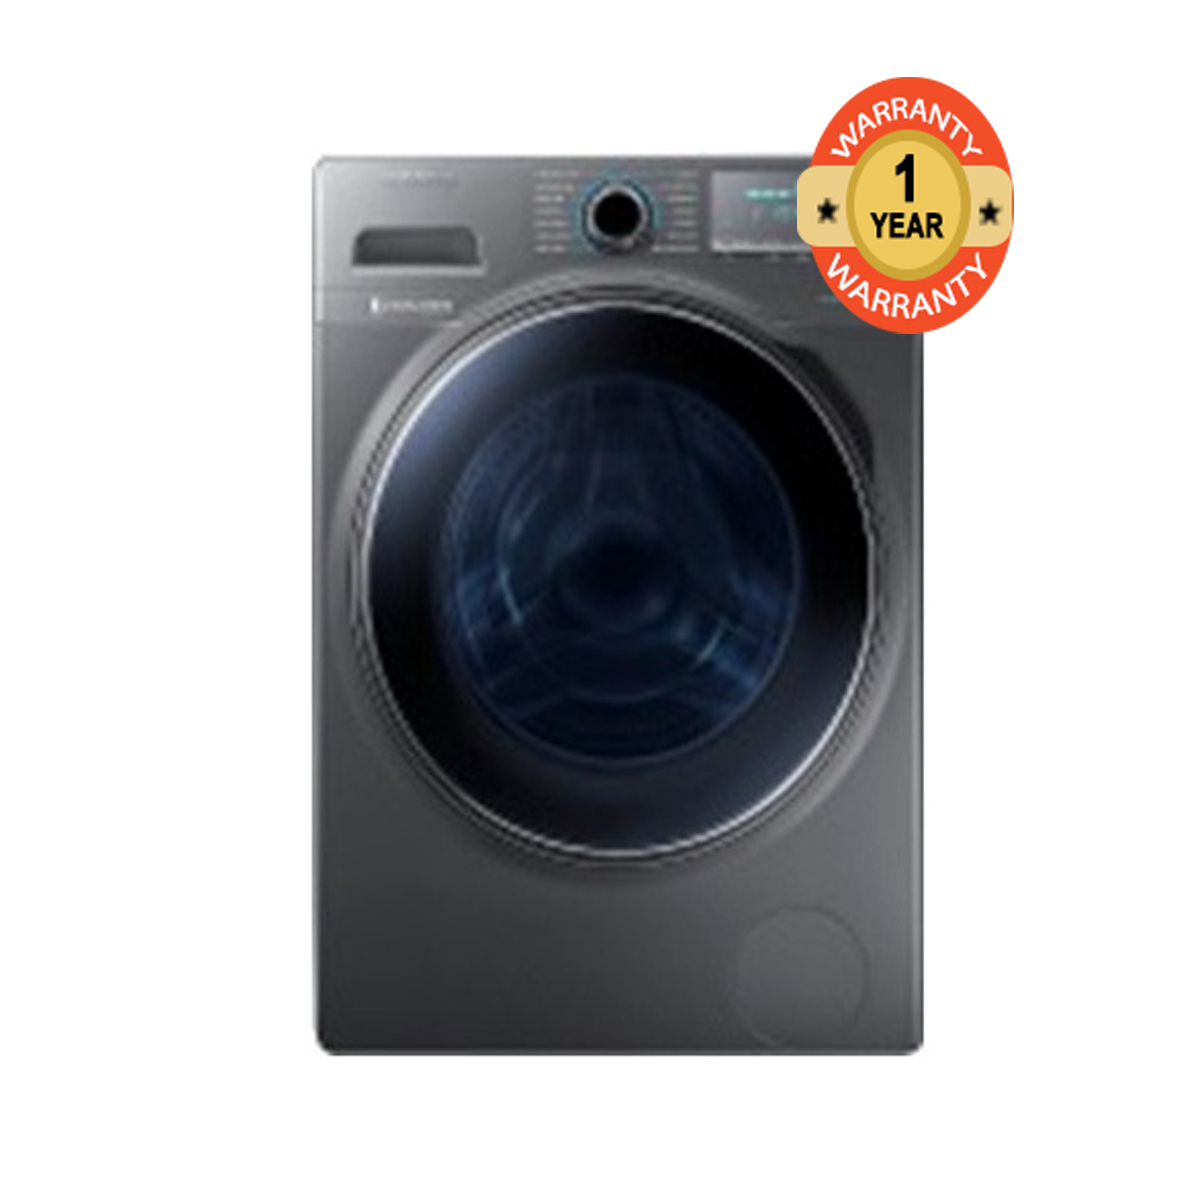 279f14a89813a2 Samsung Washer Dryer WD70J5410AS NQ Front Load 7 5KG Silver 7 5 Kg ...